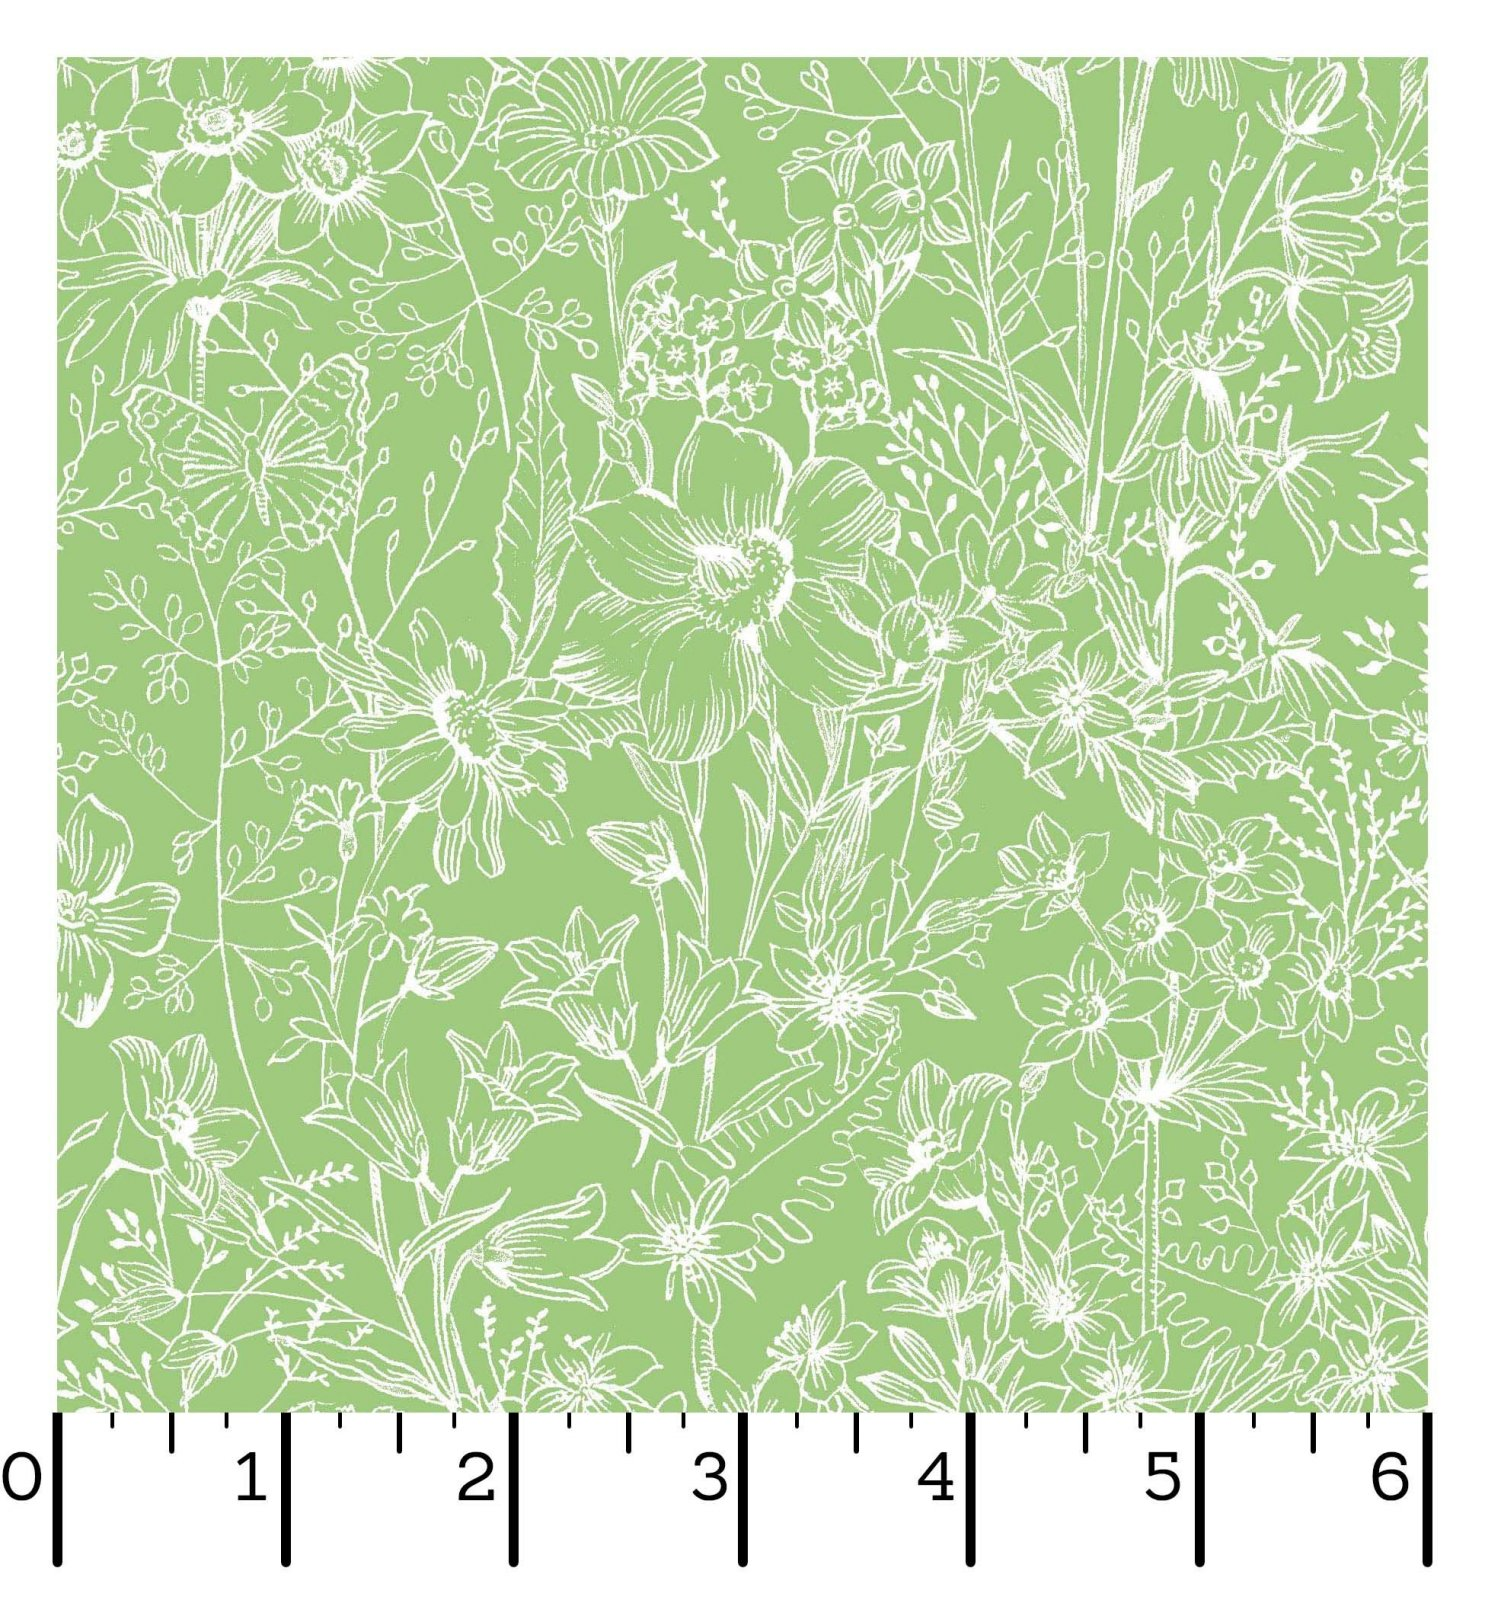 EESC-D10006 G - MEADOW EDGE BY MAYWOOD STUDIO MEADOW TOILE GREEN - ARRIVING IN MAY 2021